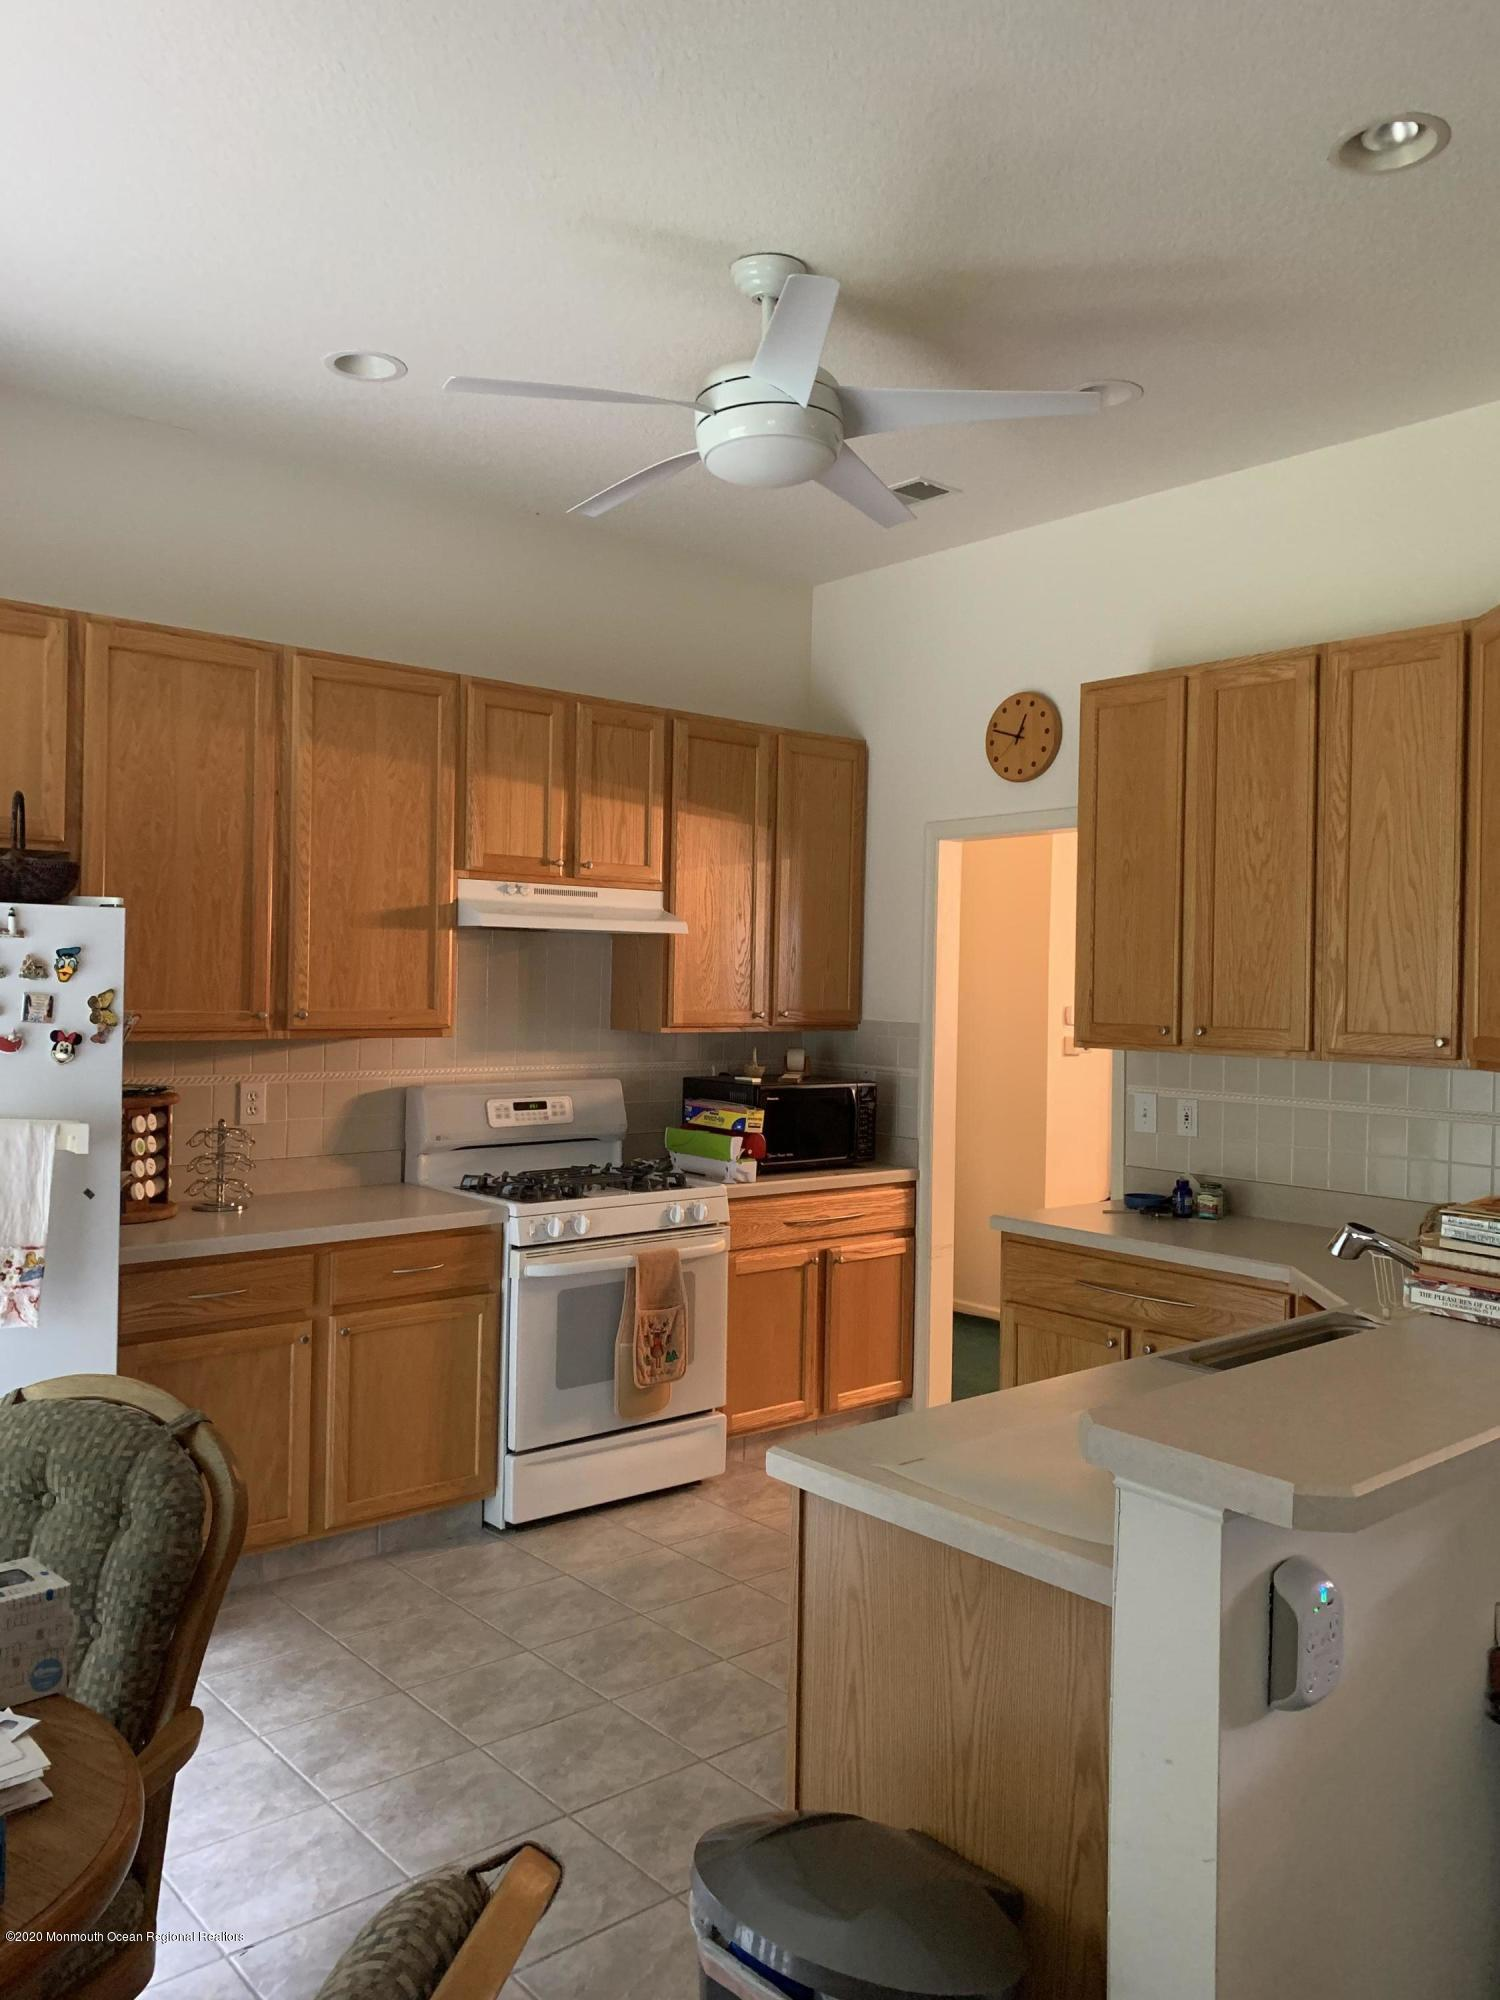 Adult Community Homes For Sale In Four Seasons Lakewood Nj